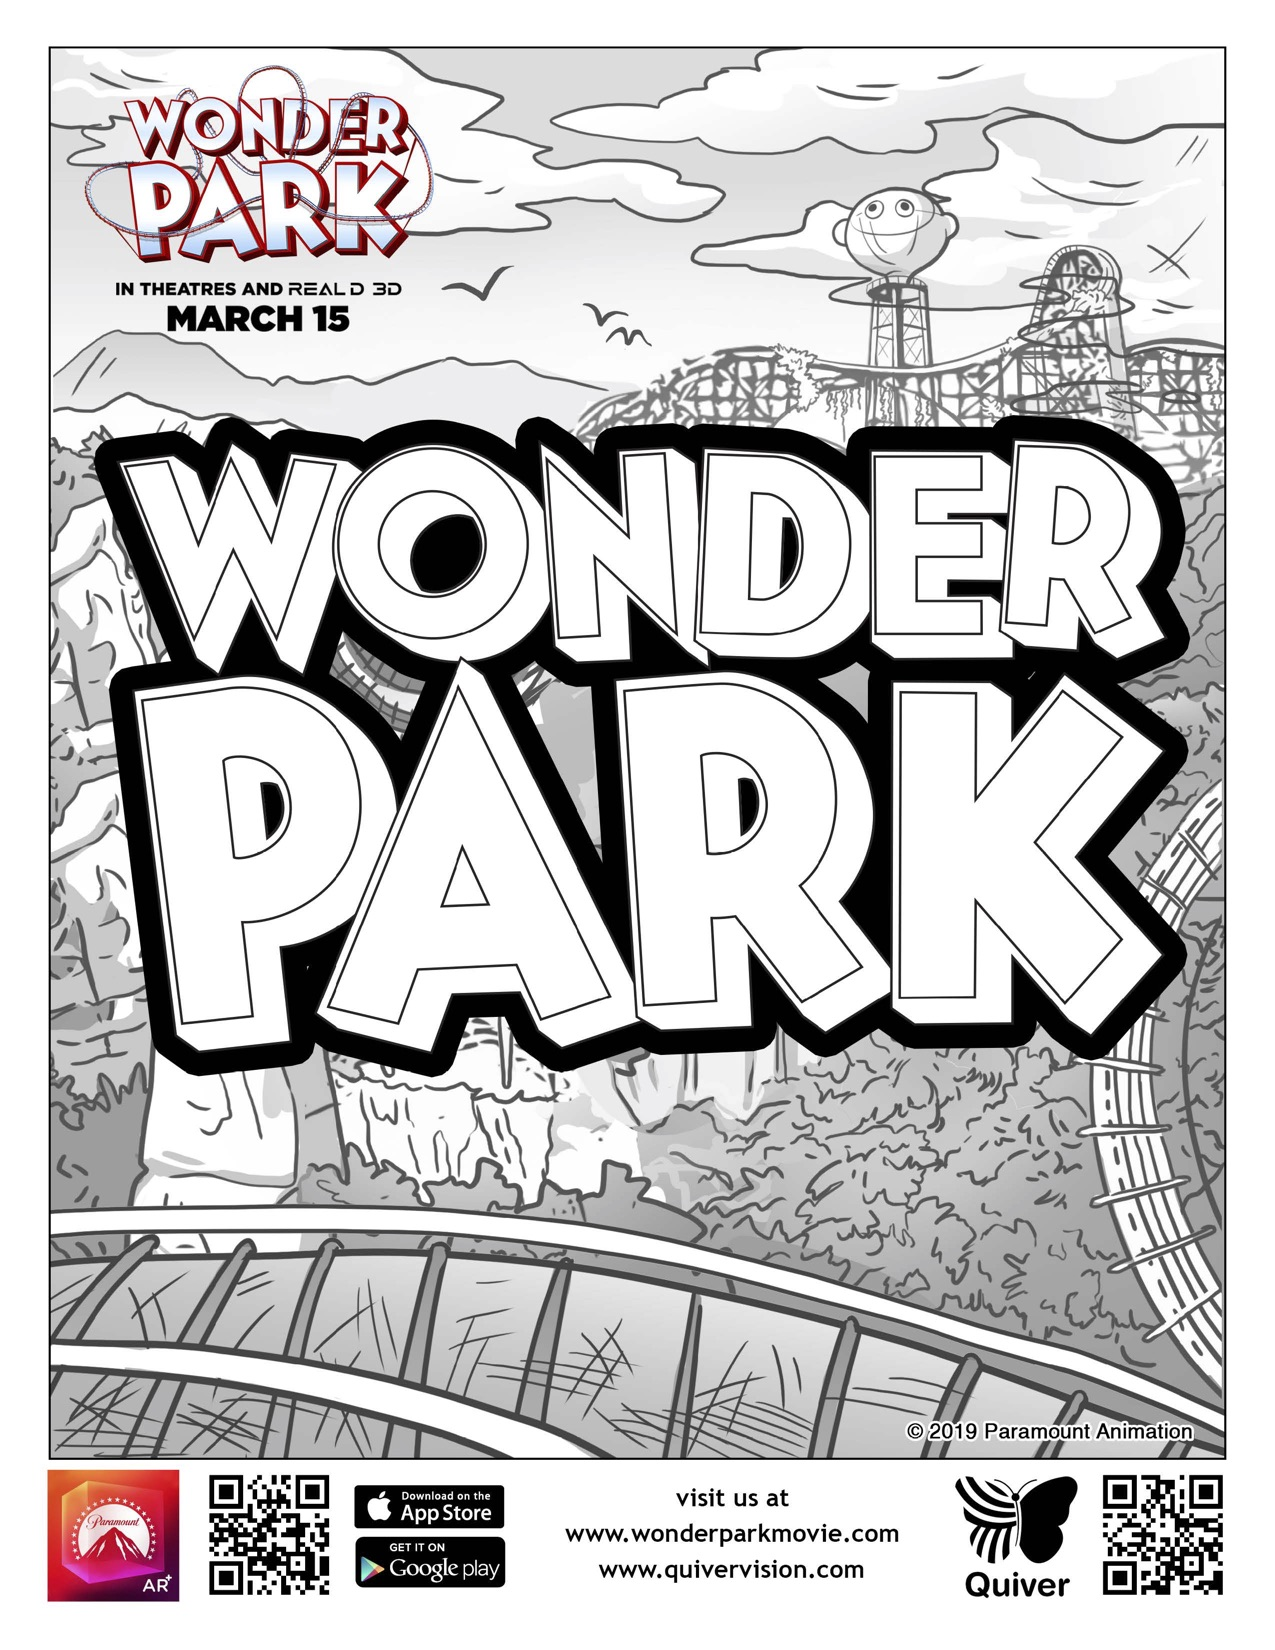 The Wonder Park colouring book; an uncolored example page of the Wonder Park title.